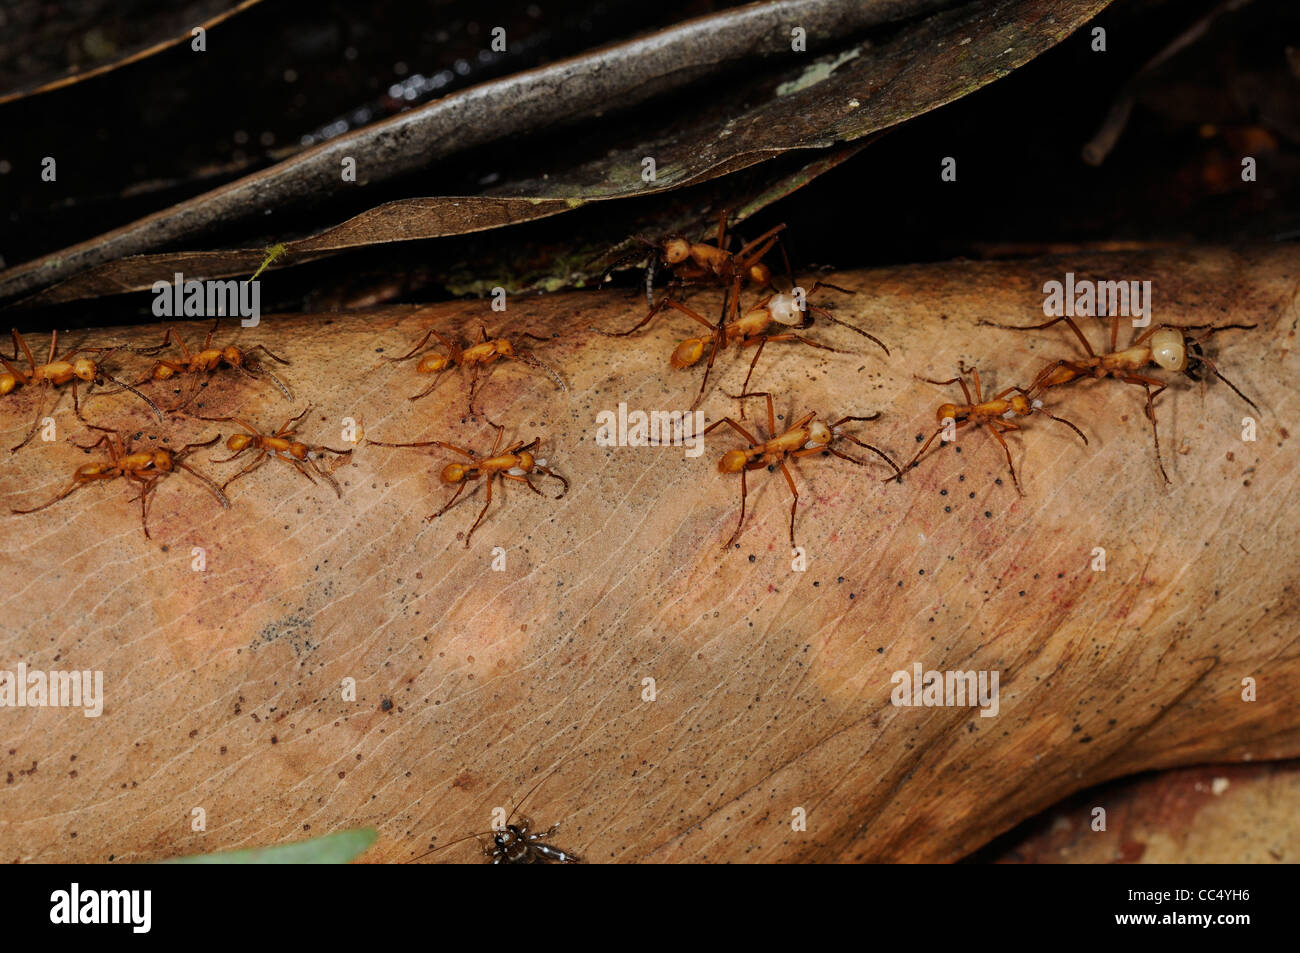 Red Army Ant (Eciton species) Rupununi, Guyana - Stock Image